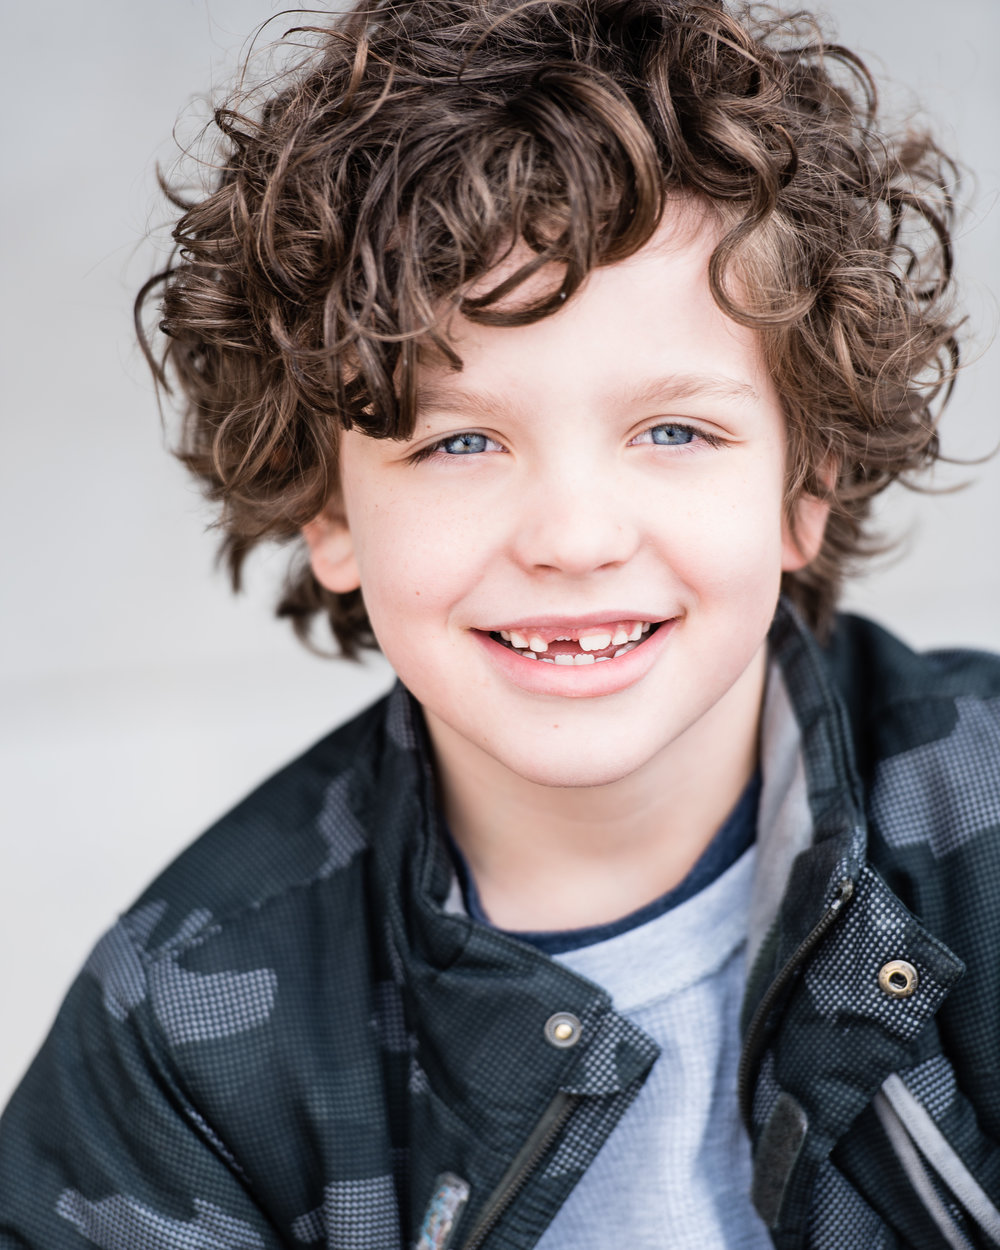 ChildrenHeadshots007.jpg